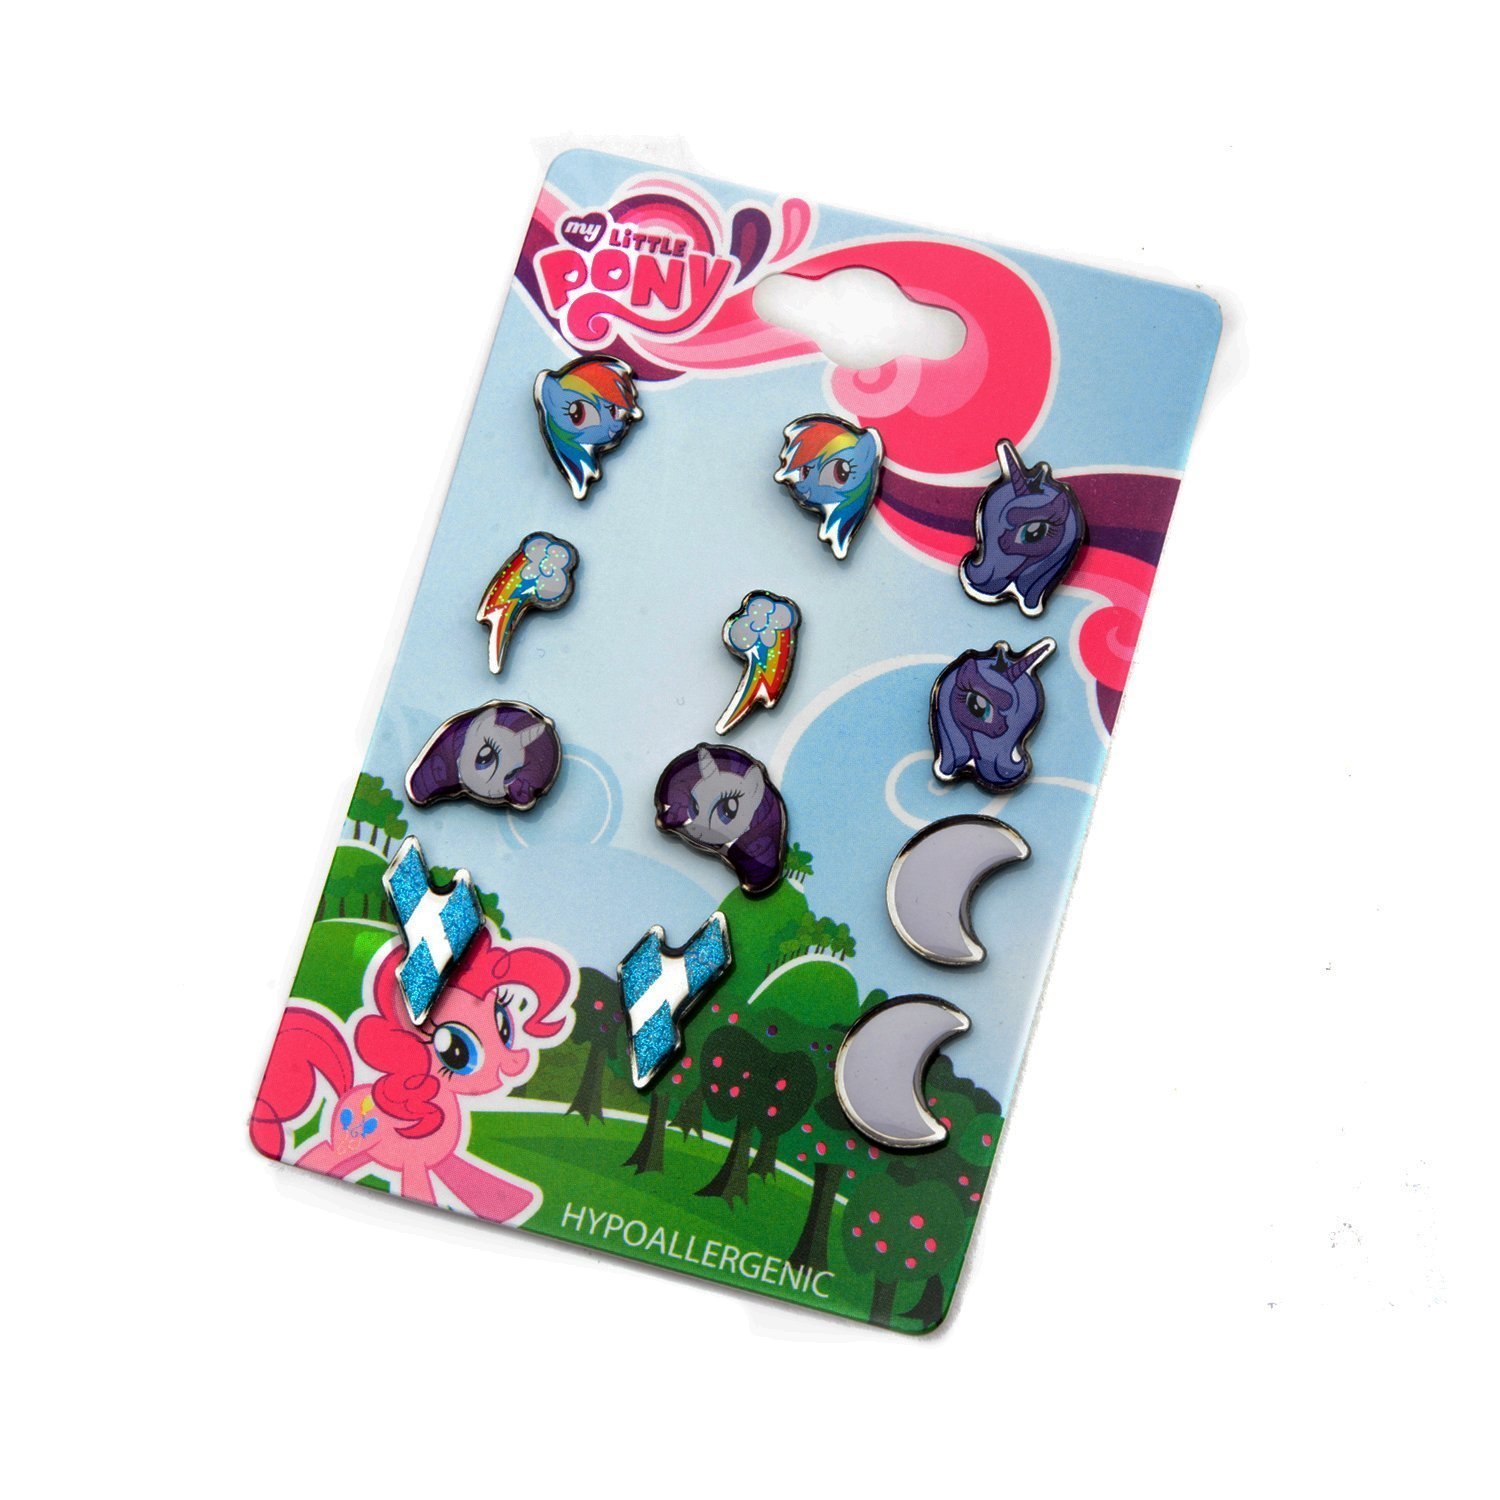 MY LITTLE PONY SURGICAL STAINLESS STEEL EARRINGS 6 PACK Sales One MLPER026A